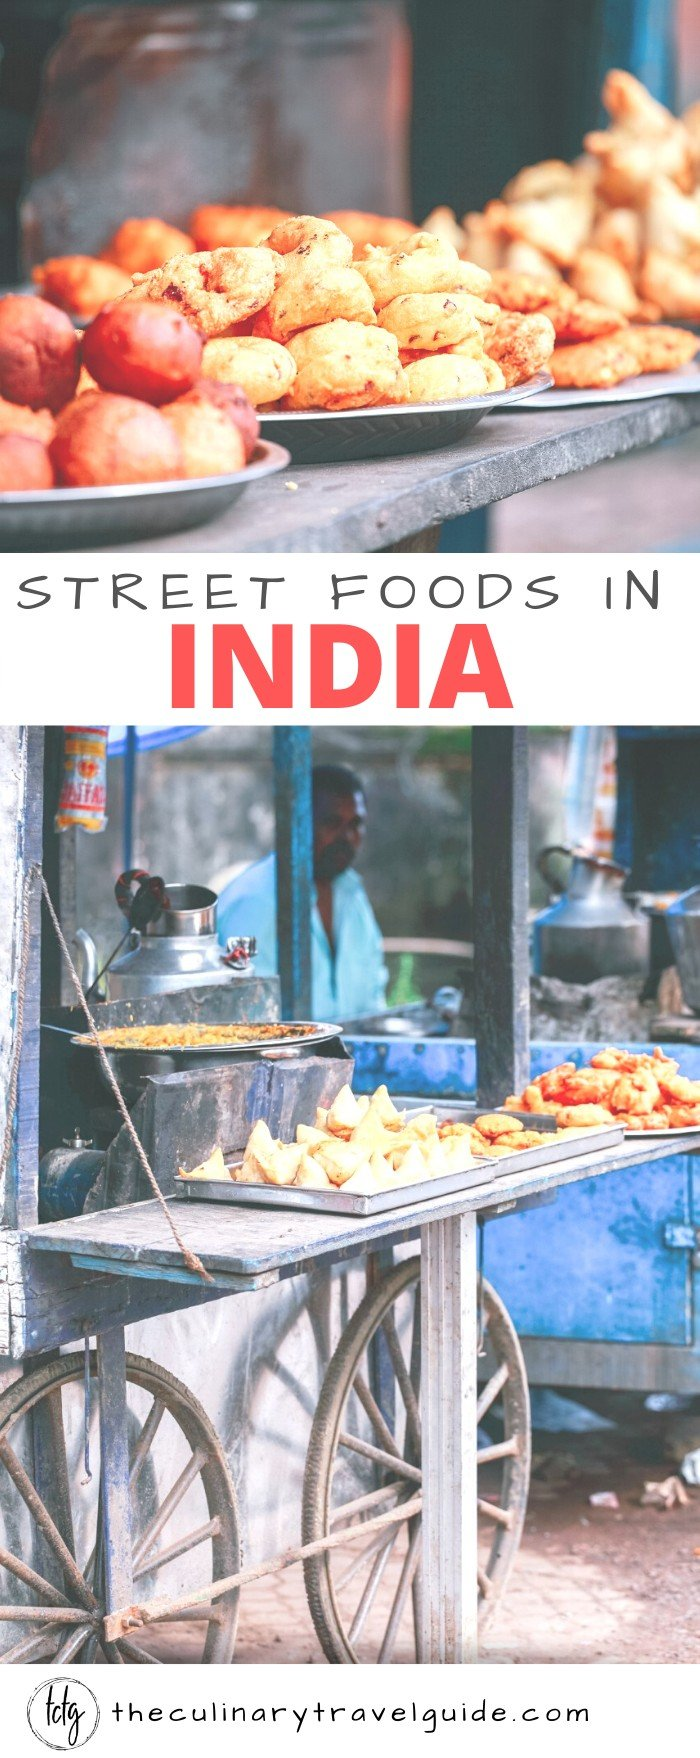 Street food cart in India